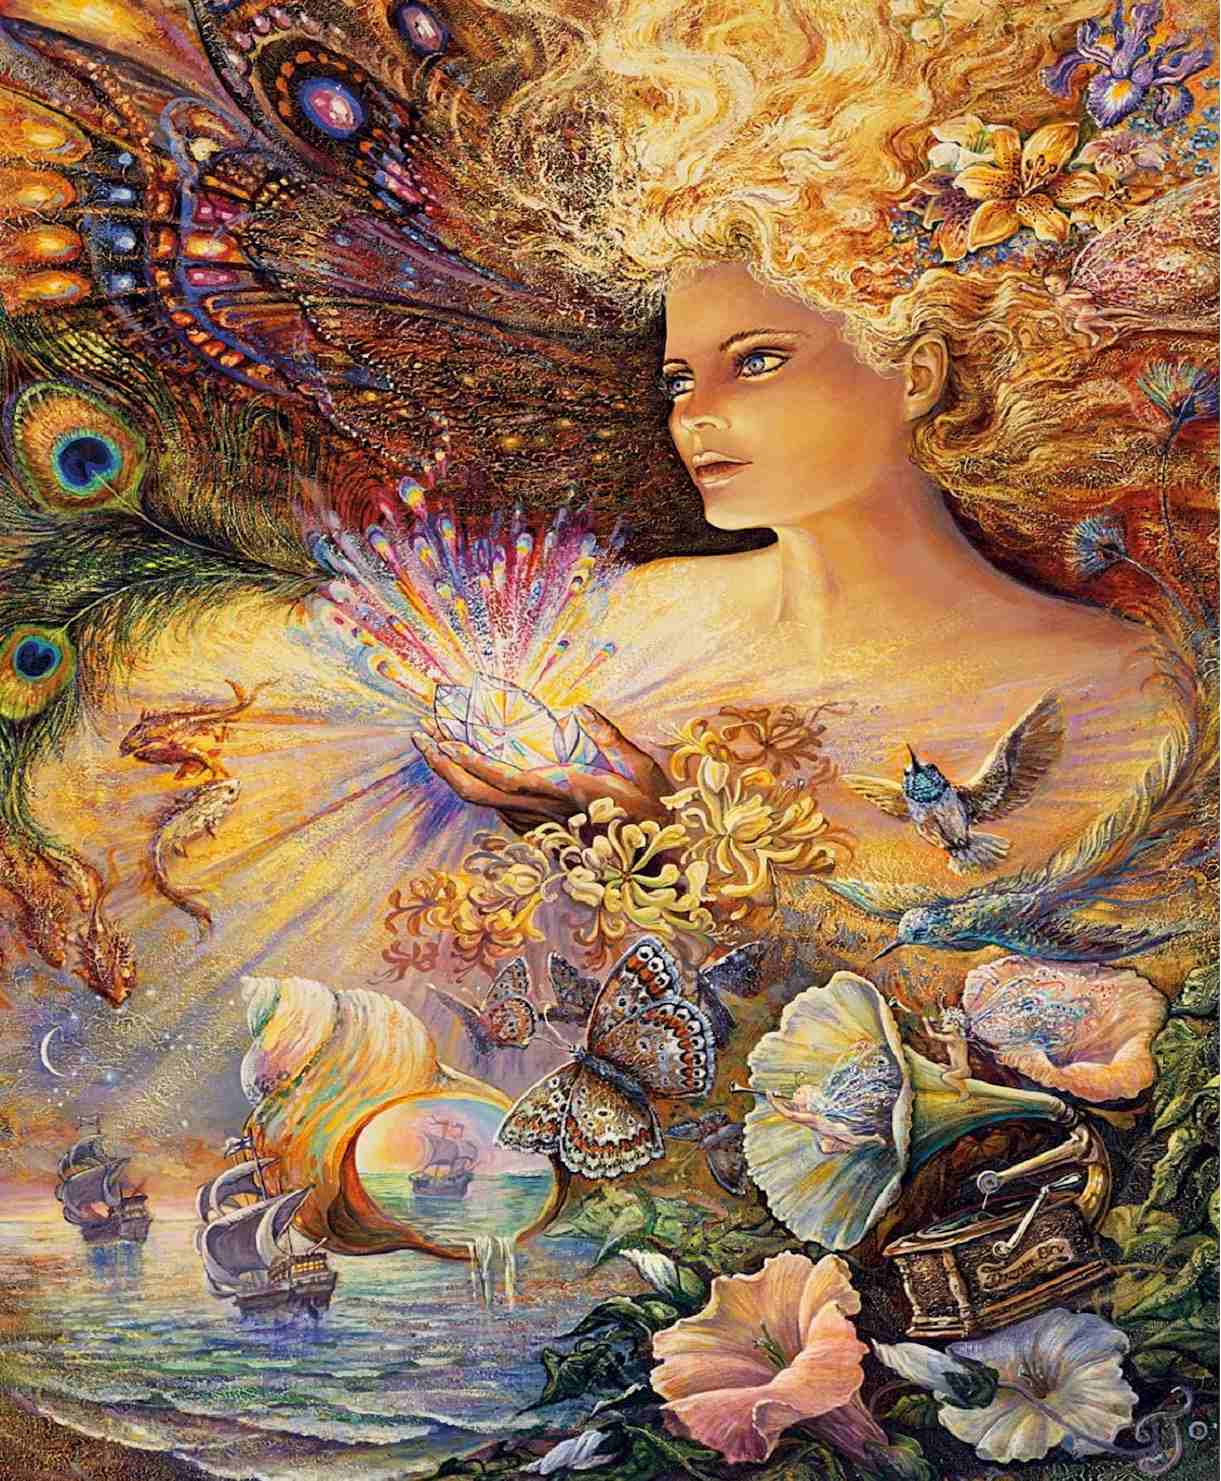 Puzzles - Josephine Wall - Crystal of Enchantment (Glitter Edition) - 1000 Piece #Jigsaw #Puzzle #poster #prints #photo #DiY #vintage #toys